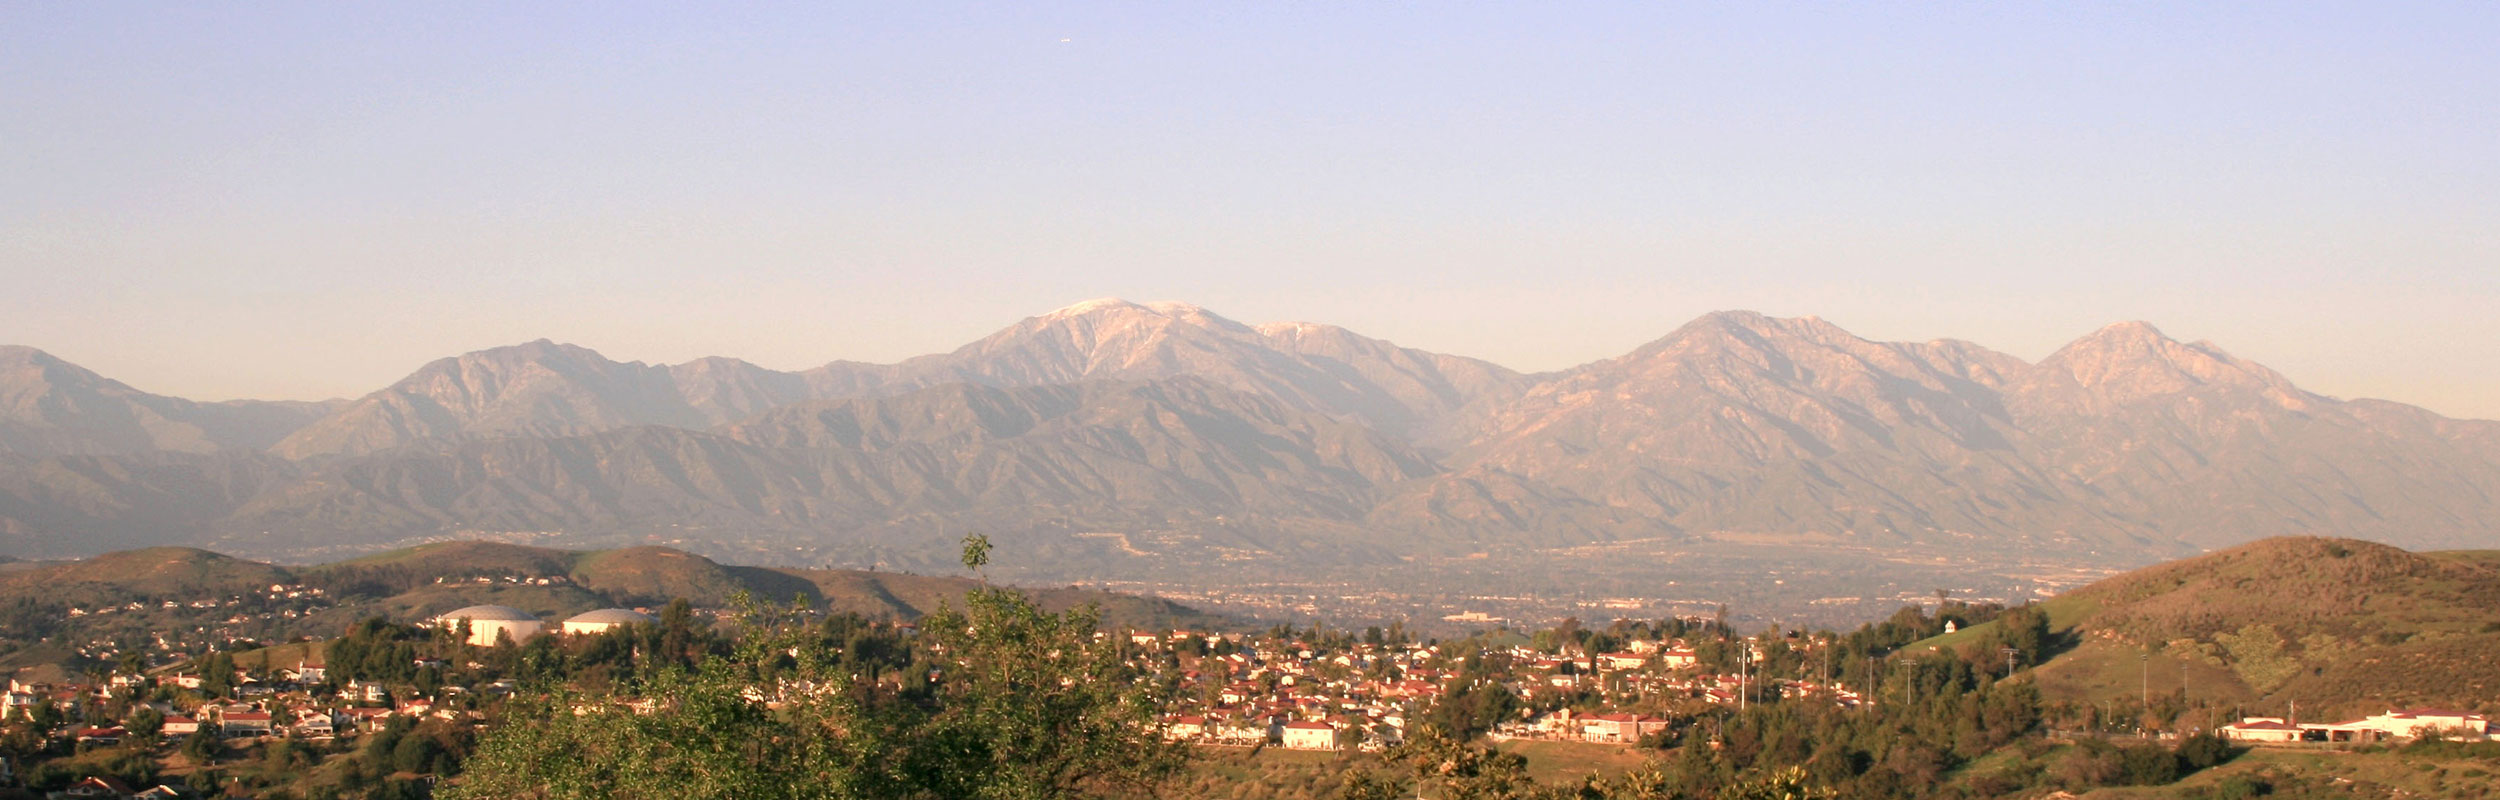 City and mountains view in Brea, California